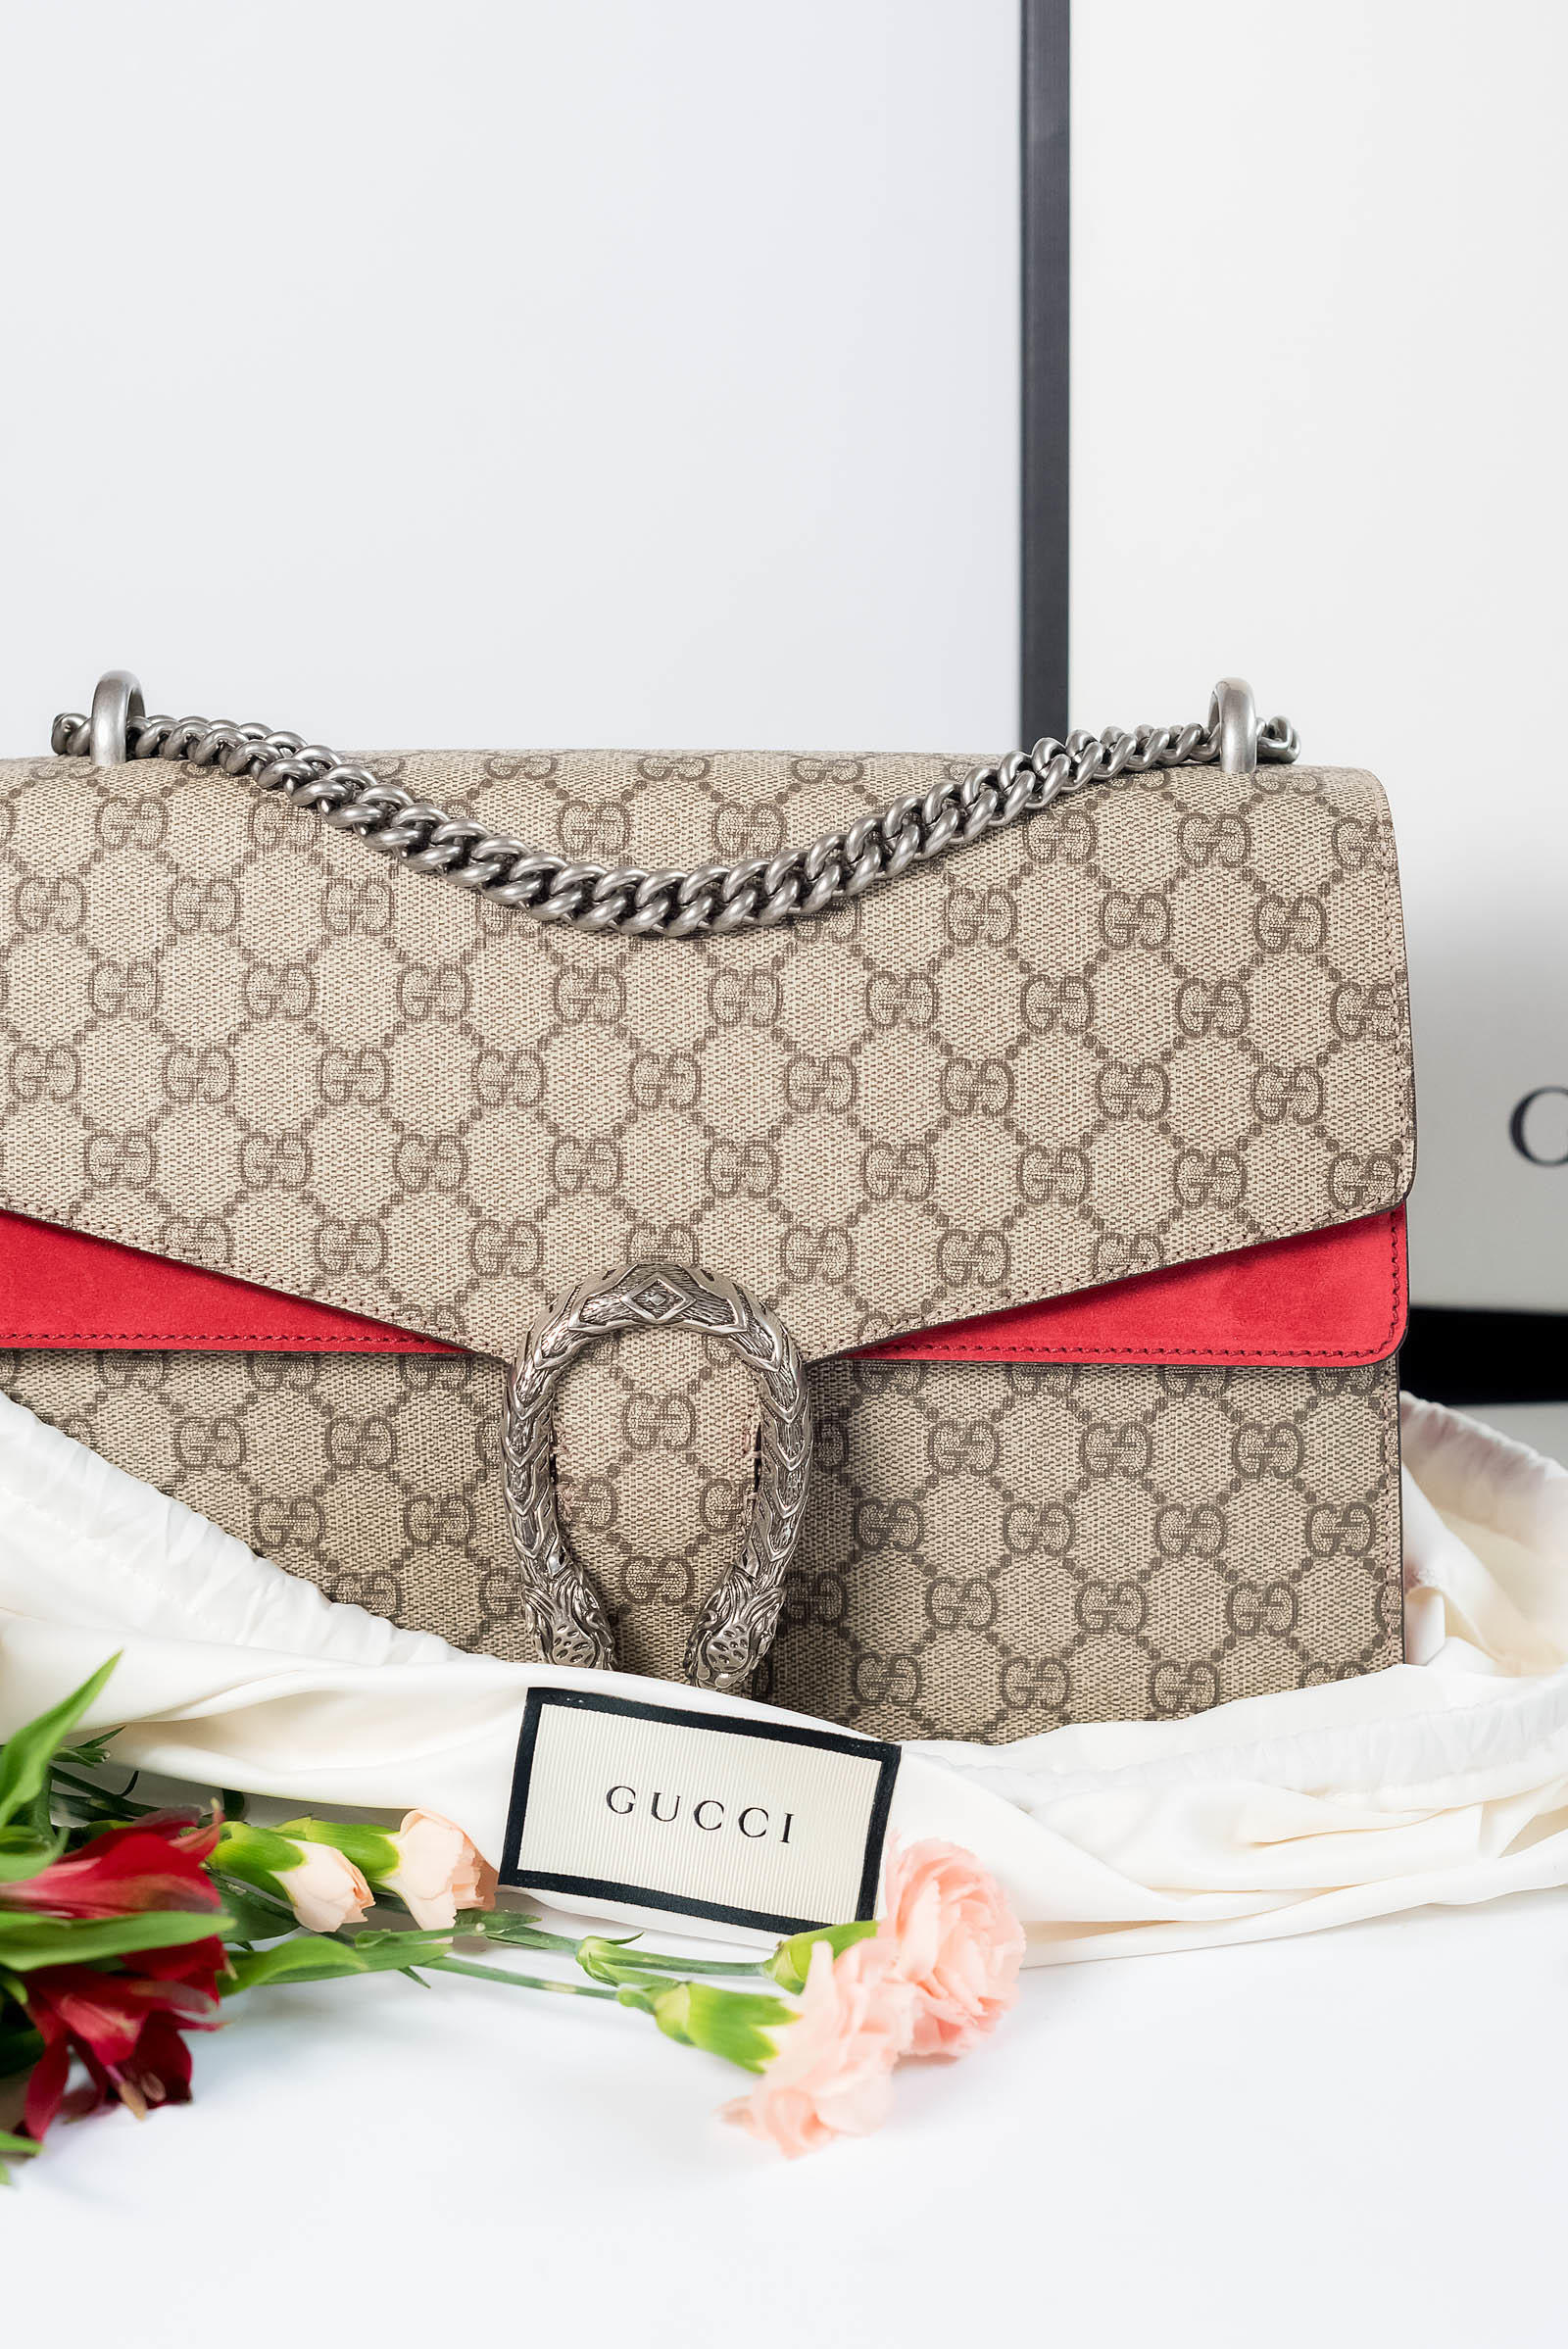 508c9f710f65 Obsessing Over... My Gucci Dionysus Bag - Sed Bona